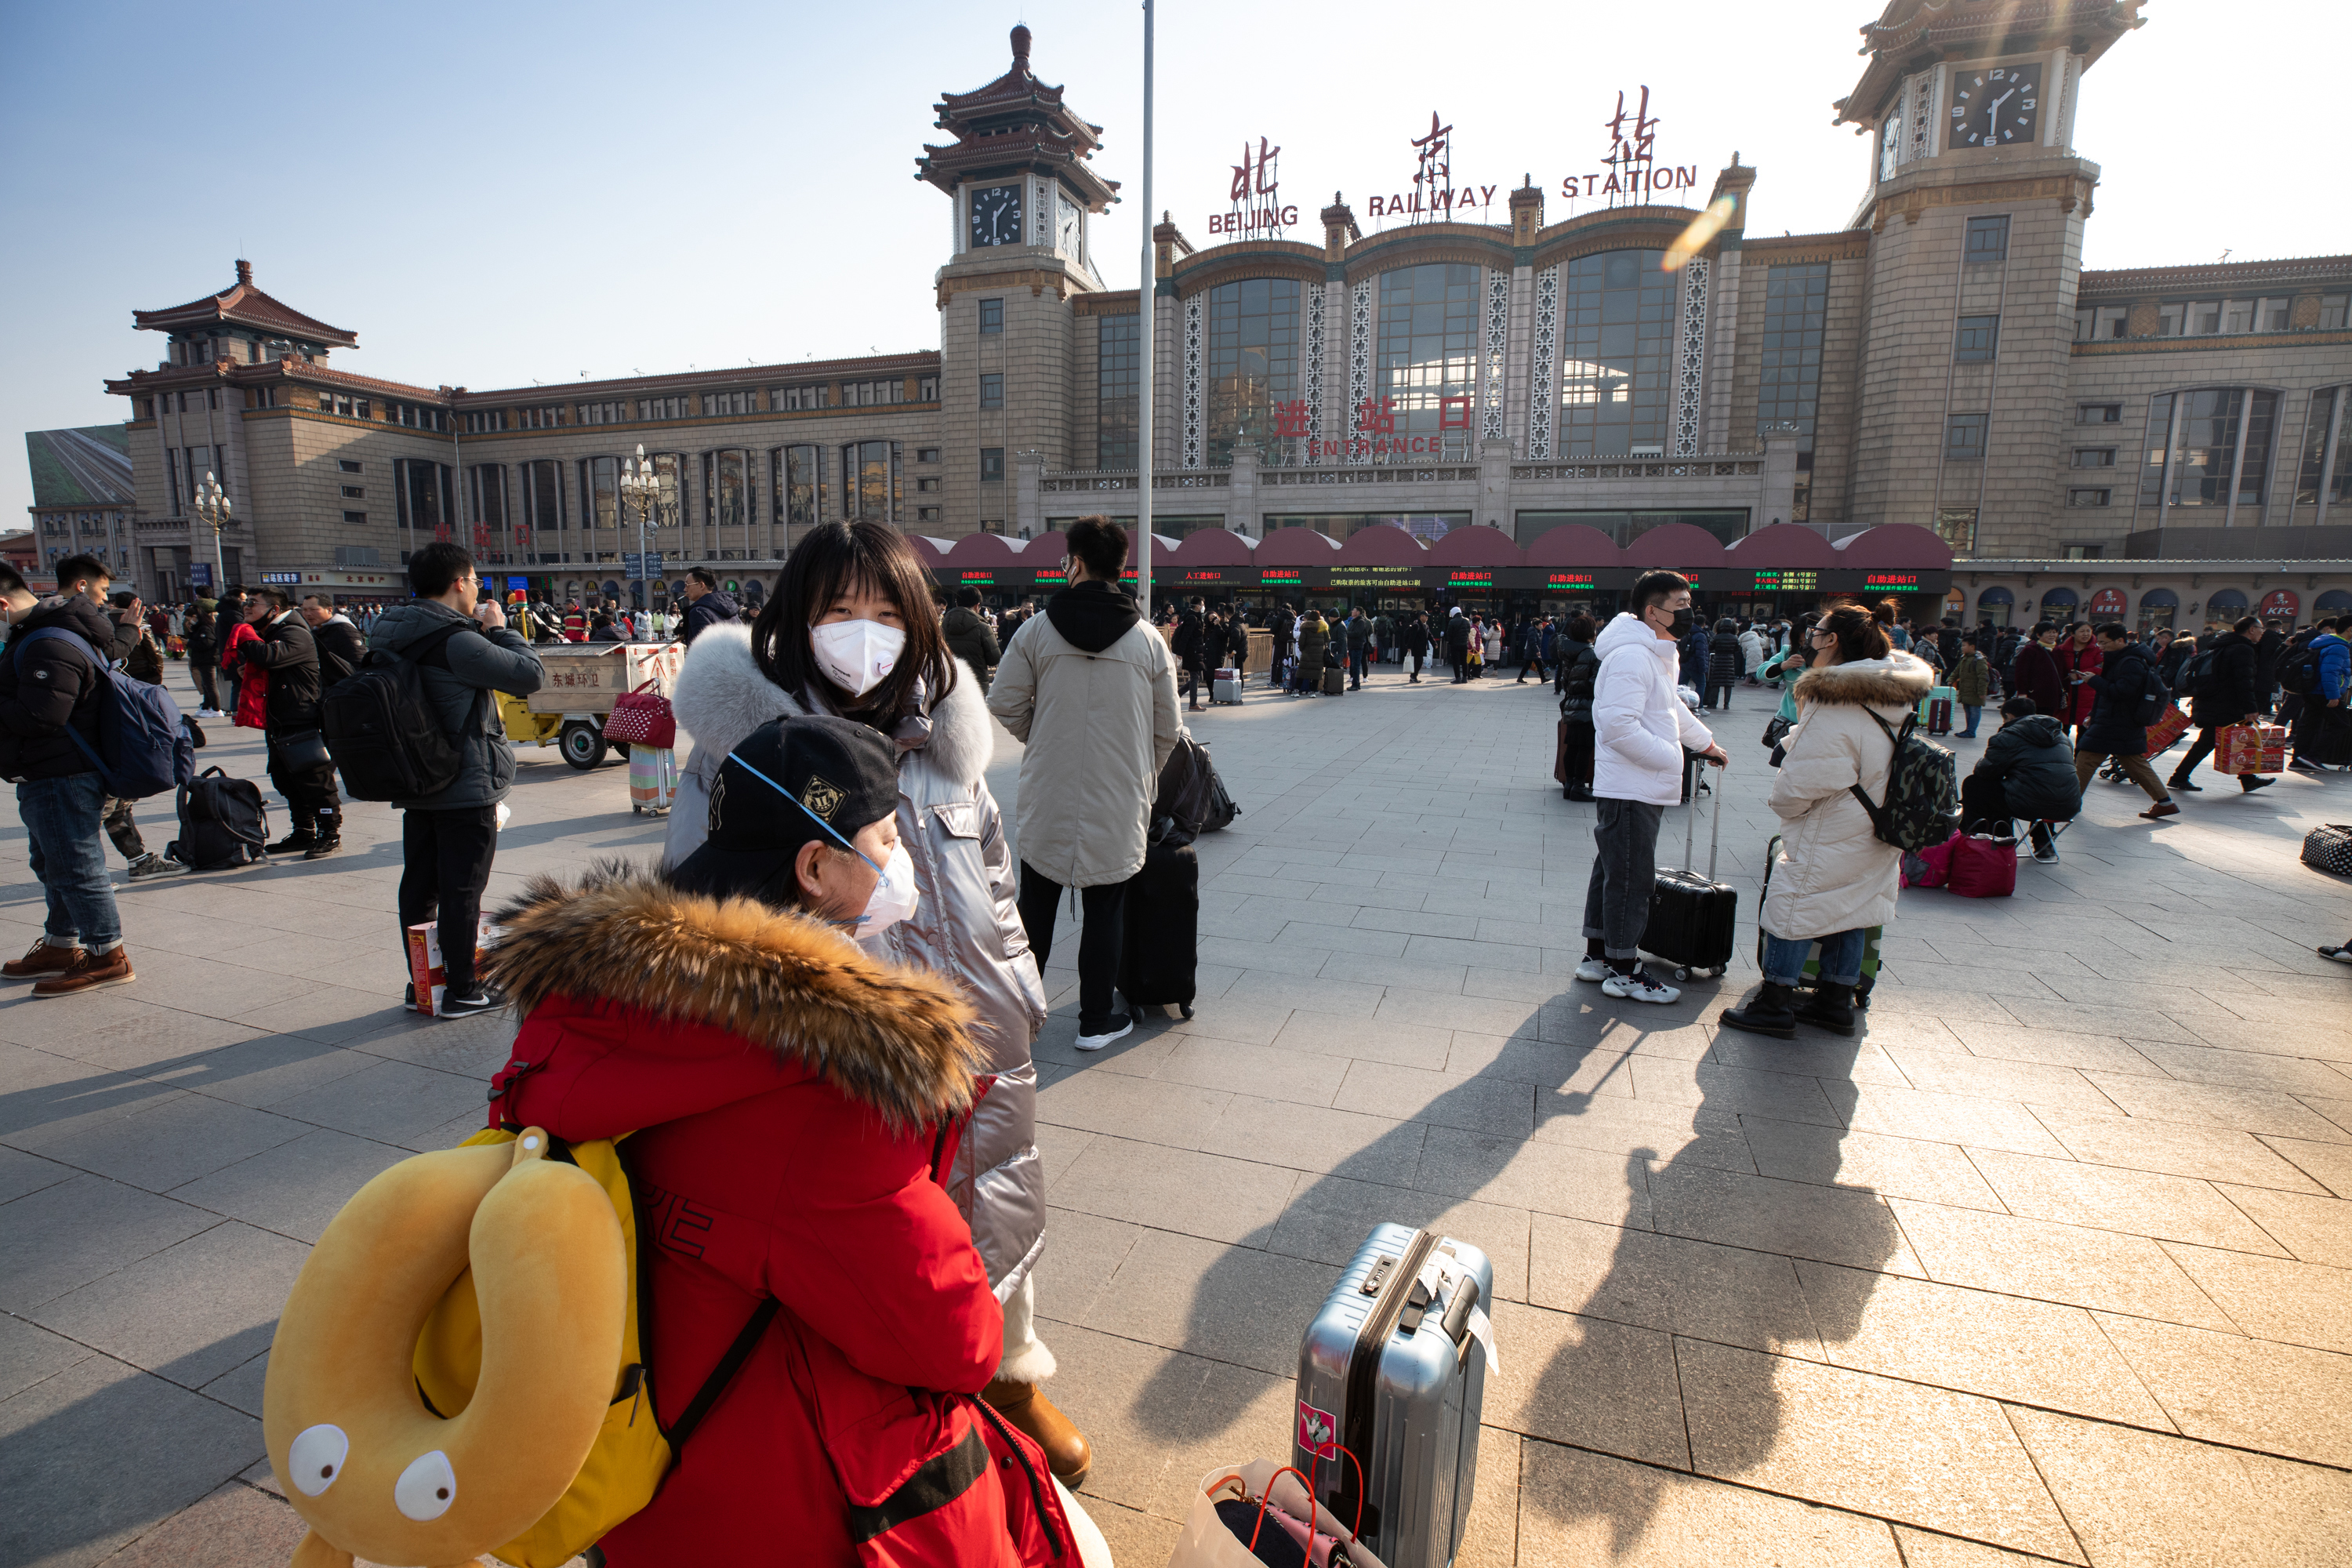 Despite COVID-related lockdowns in large areas of China, millions jammed the railways to visit family for Lunar New Year holidays in January, thus spreading the virus. (Saša Petricic/CBC)